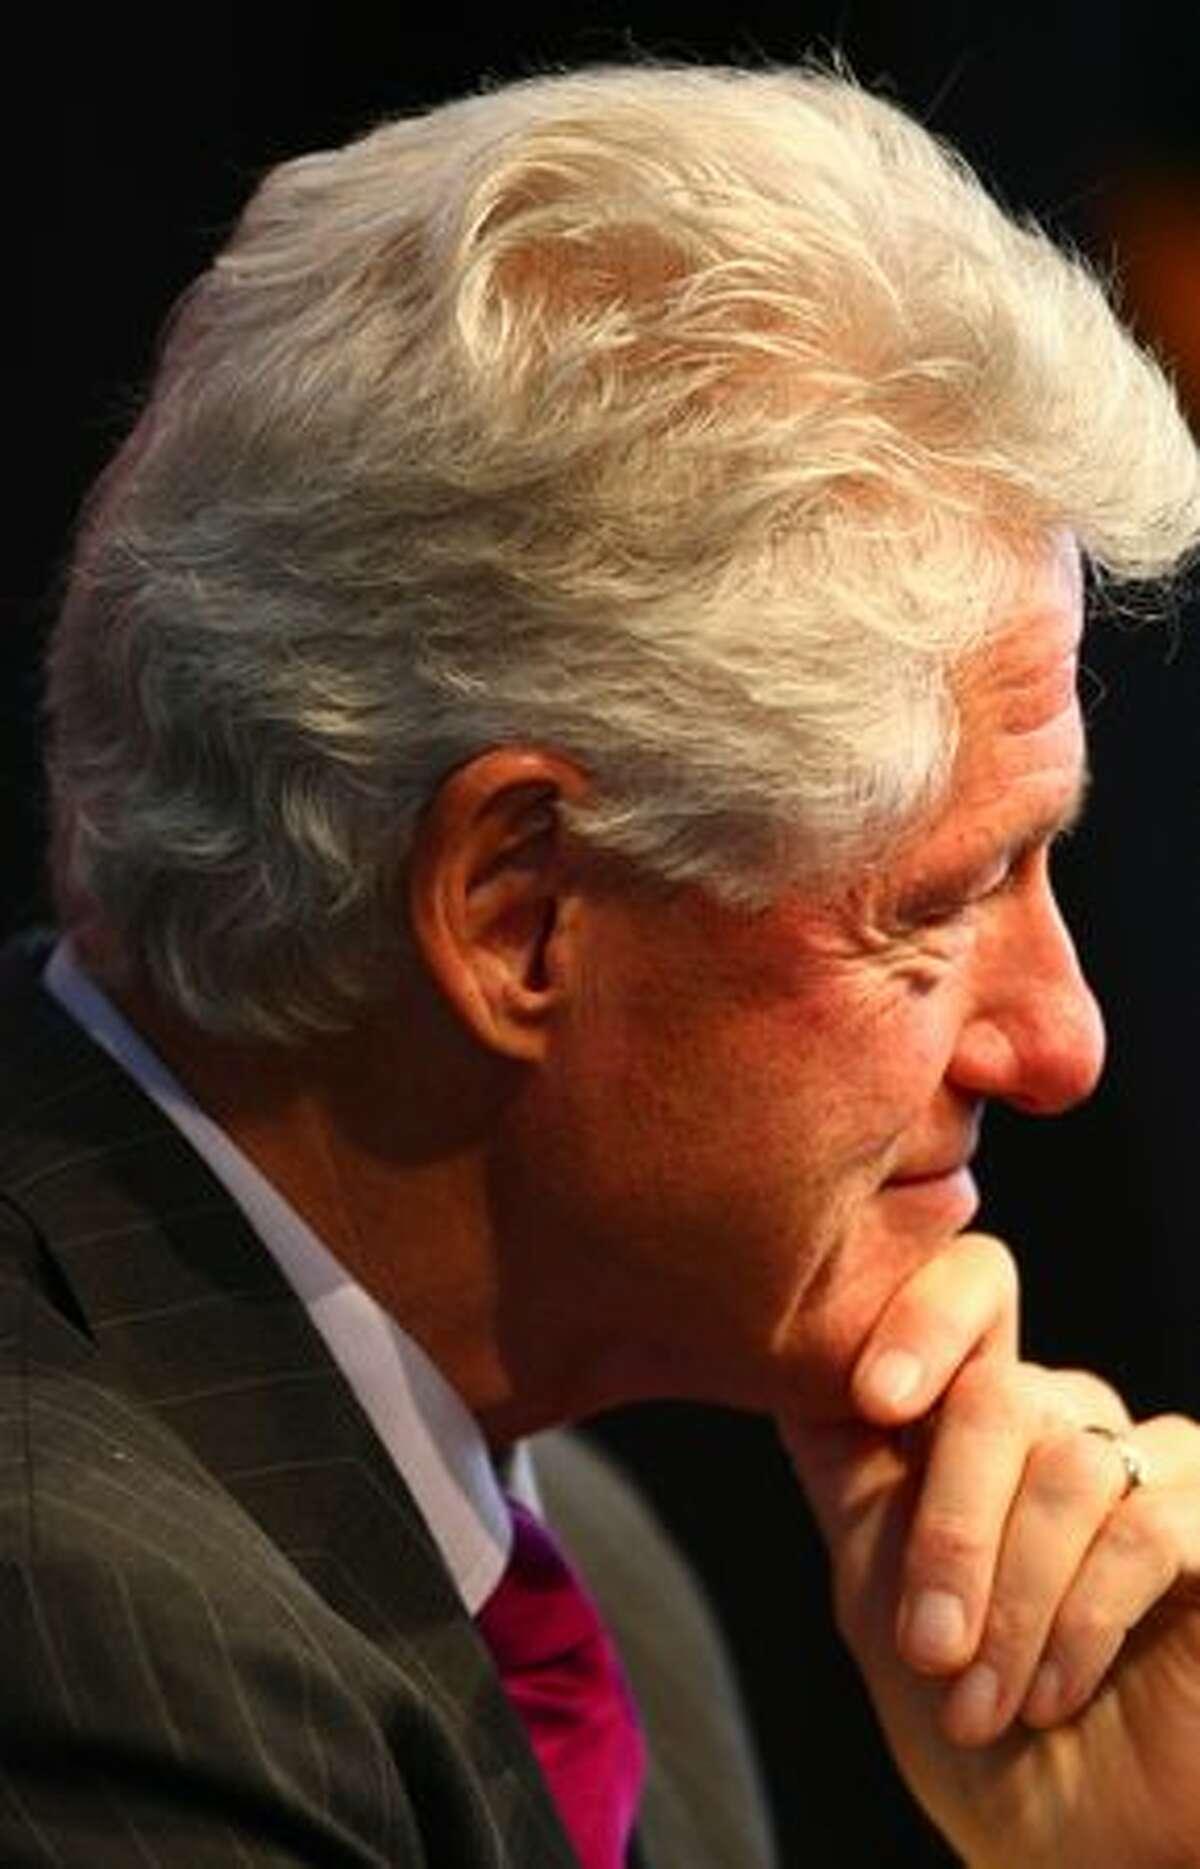 Former U.S. President Bill Clinton waits to take the podium during a campaign event for U.S. Sen. Patty Murray on Monday.